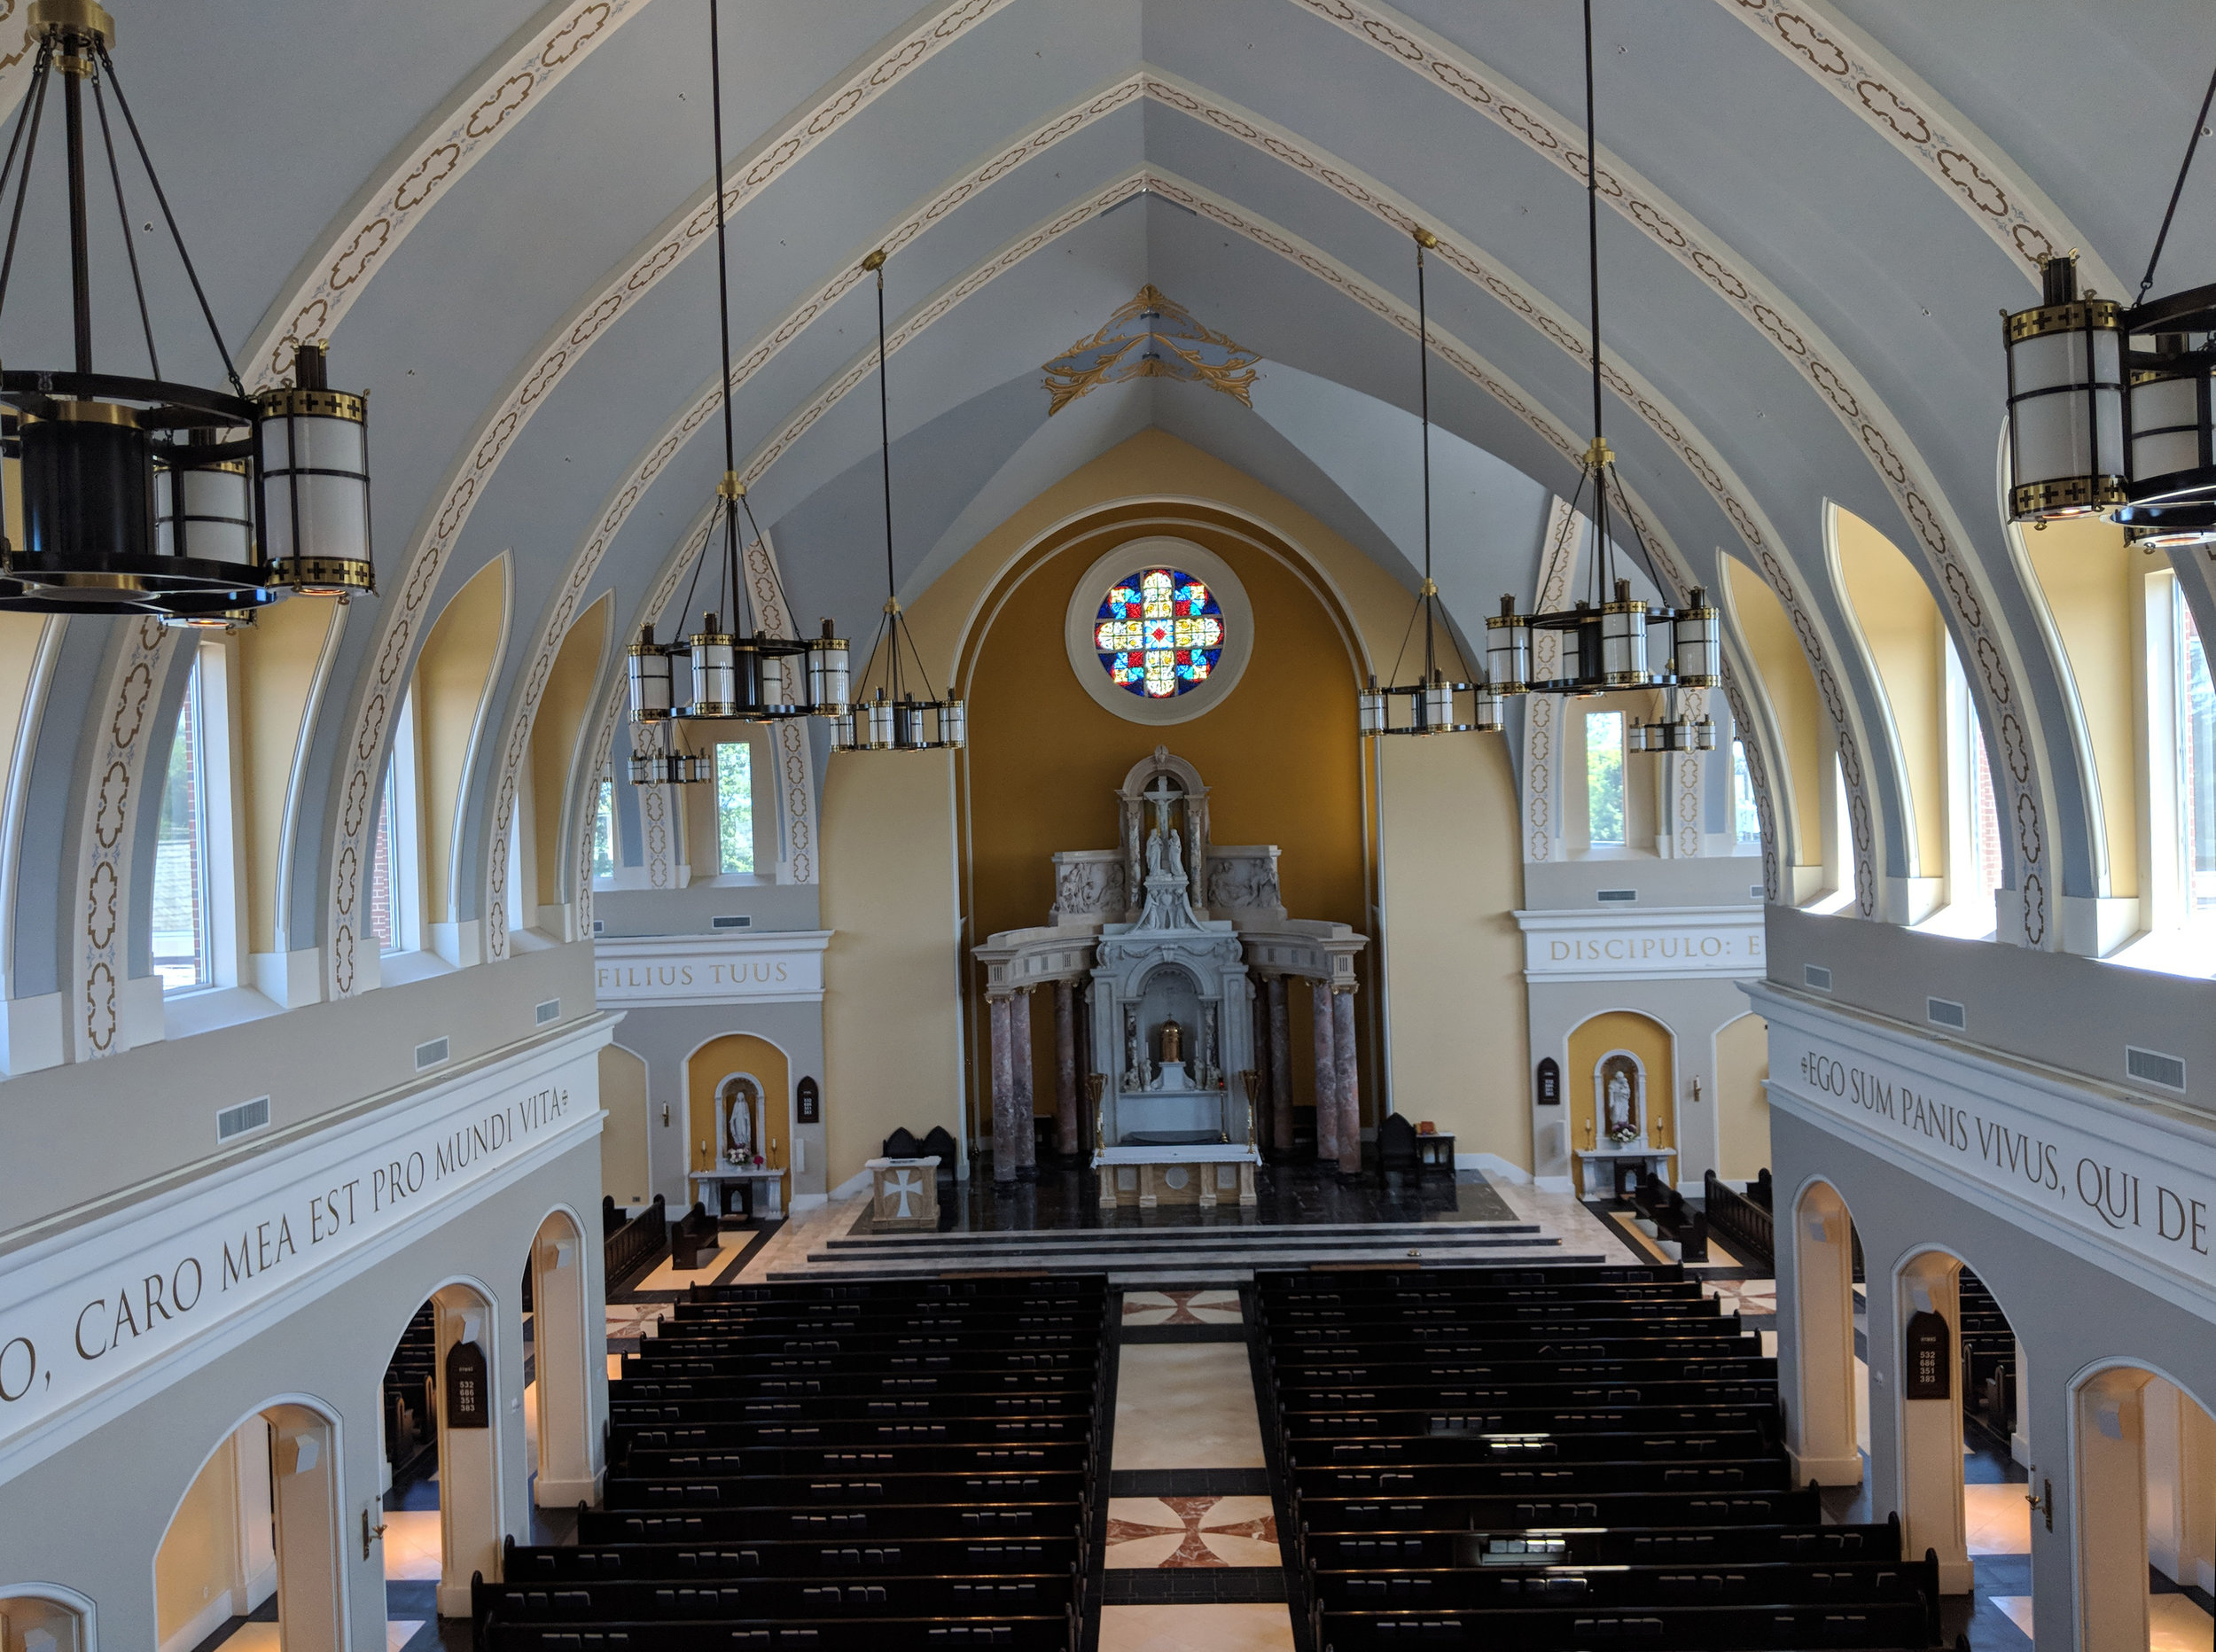 St. John the Apostle Church uses a mixture of CAMM speakers, Audio-Technica wired and wireless microphones, and Audix choir microphones for accurate and intelligible sound reproduction.